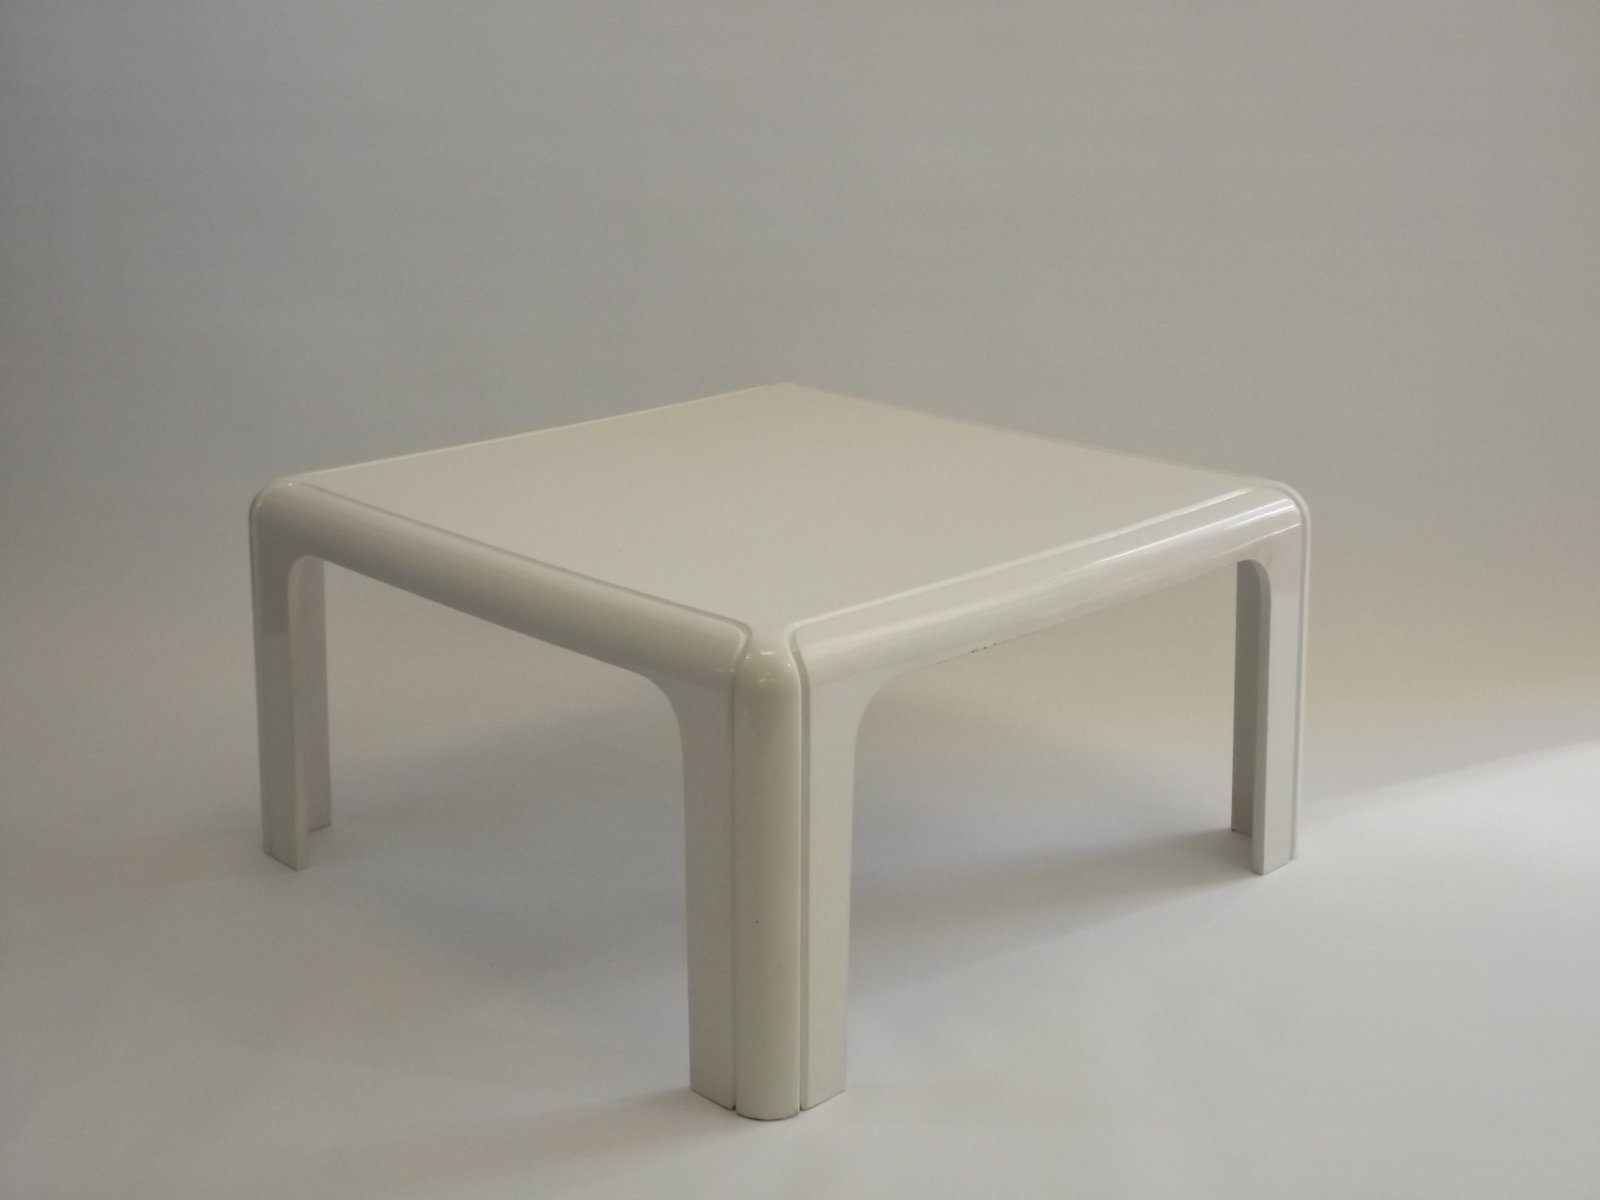 4894 Coffee Table By Gae Aulenti For Kartell 1975 For Sale At Pamono